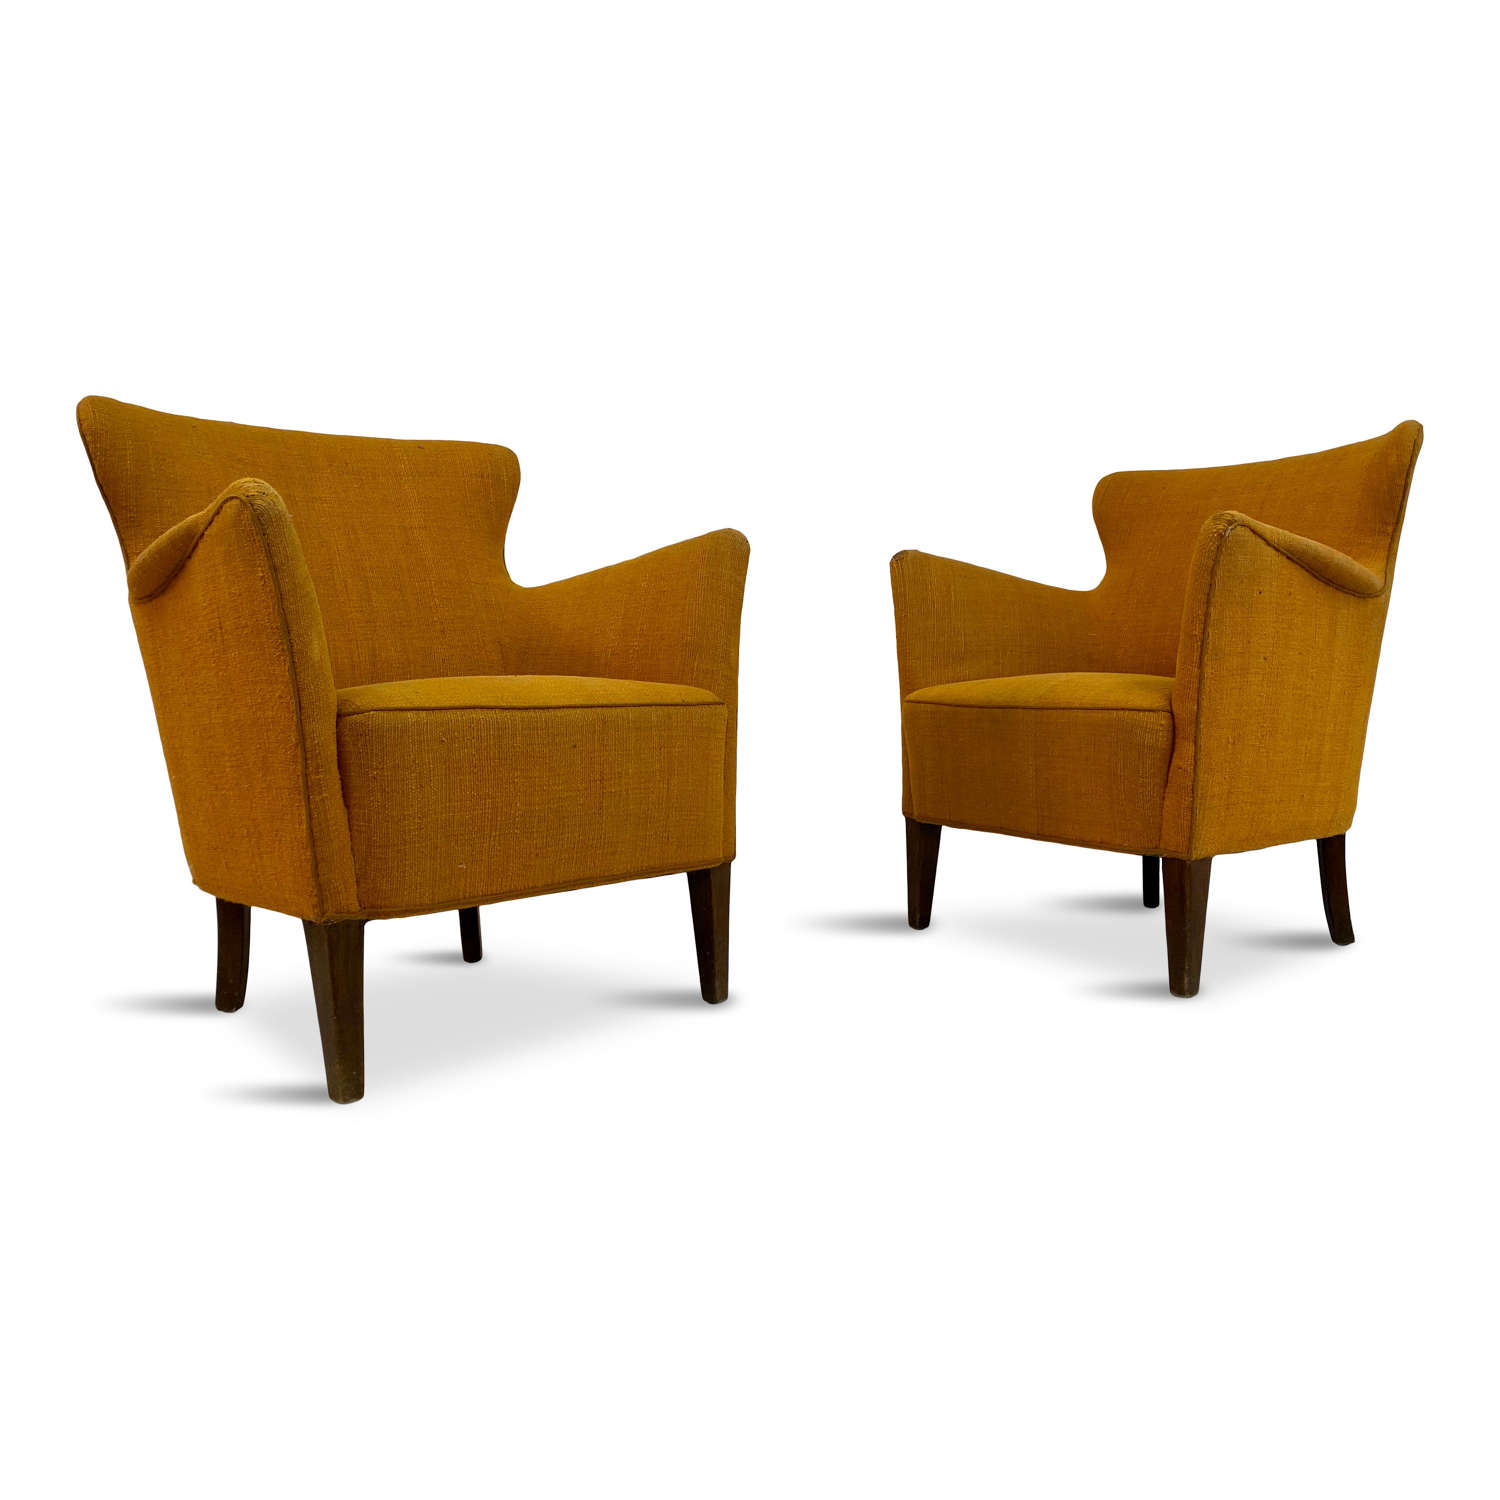 Pair of 1950s Danish Armchairs